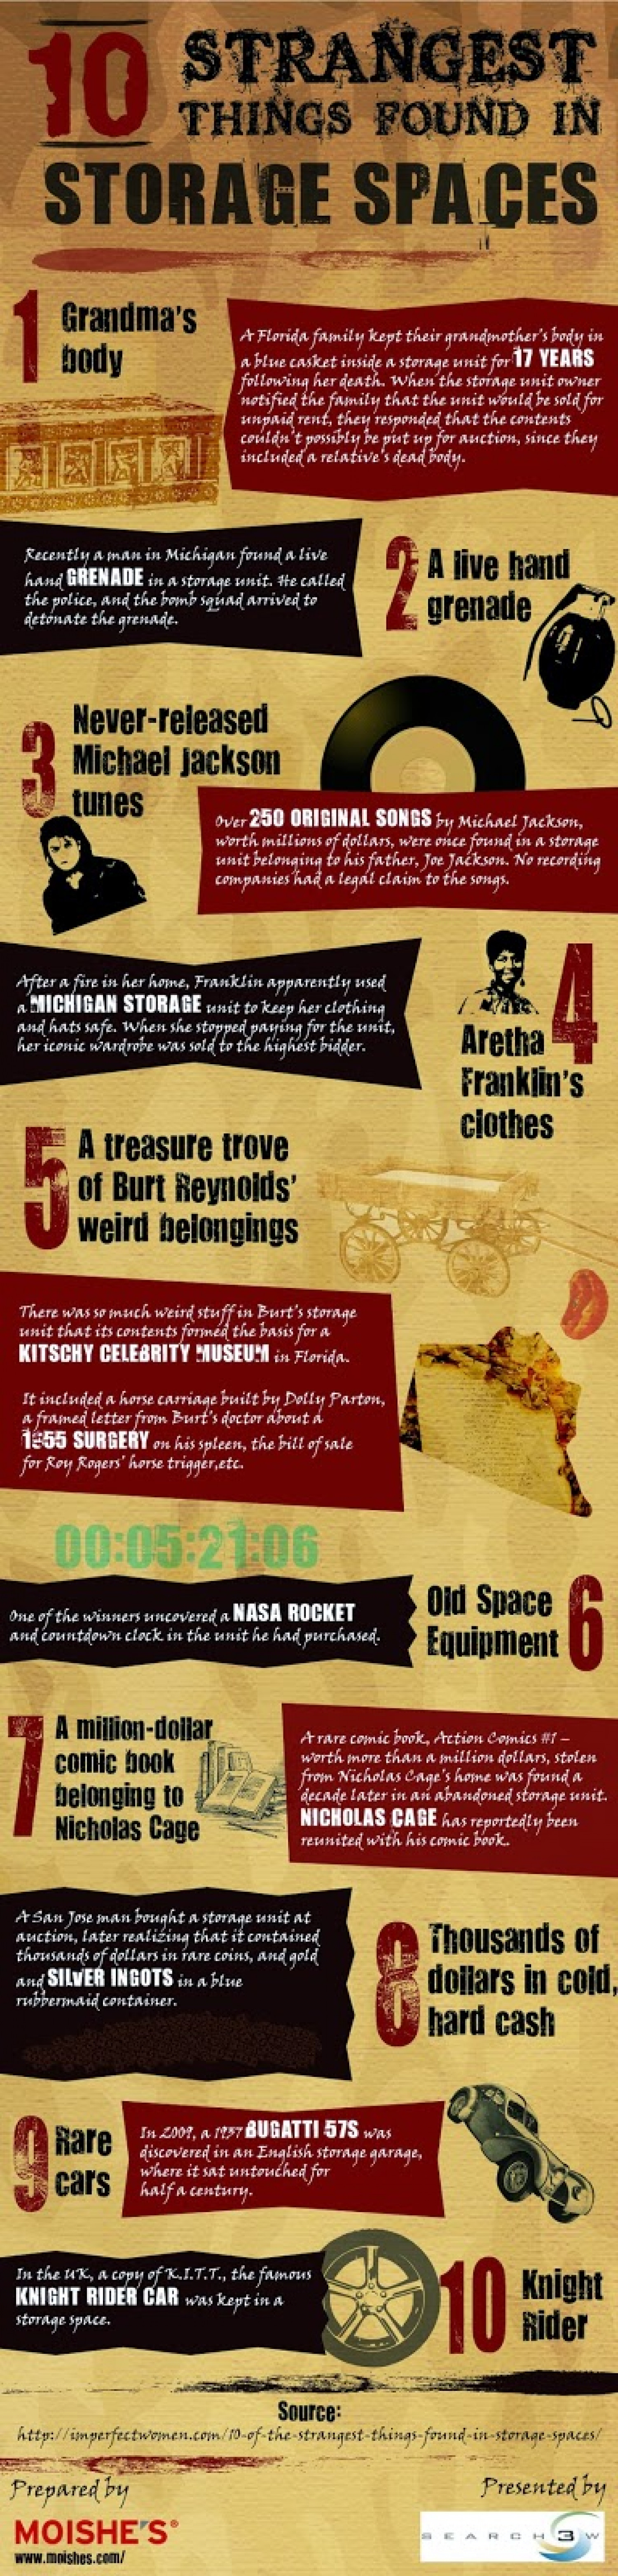 10 Strangest Things Found Inside Storage Spaces Infographic